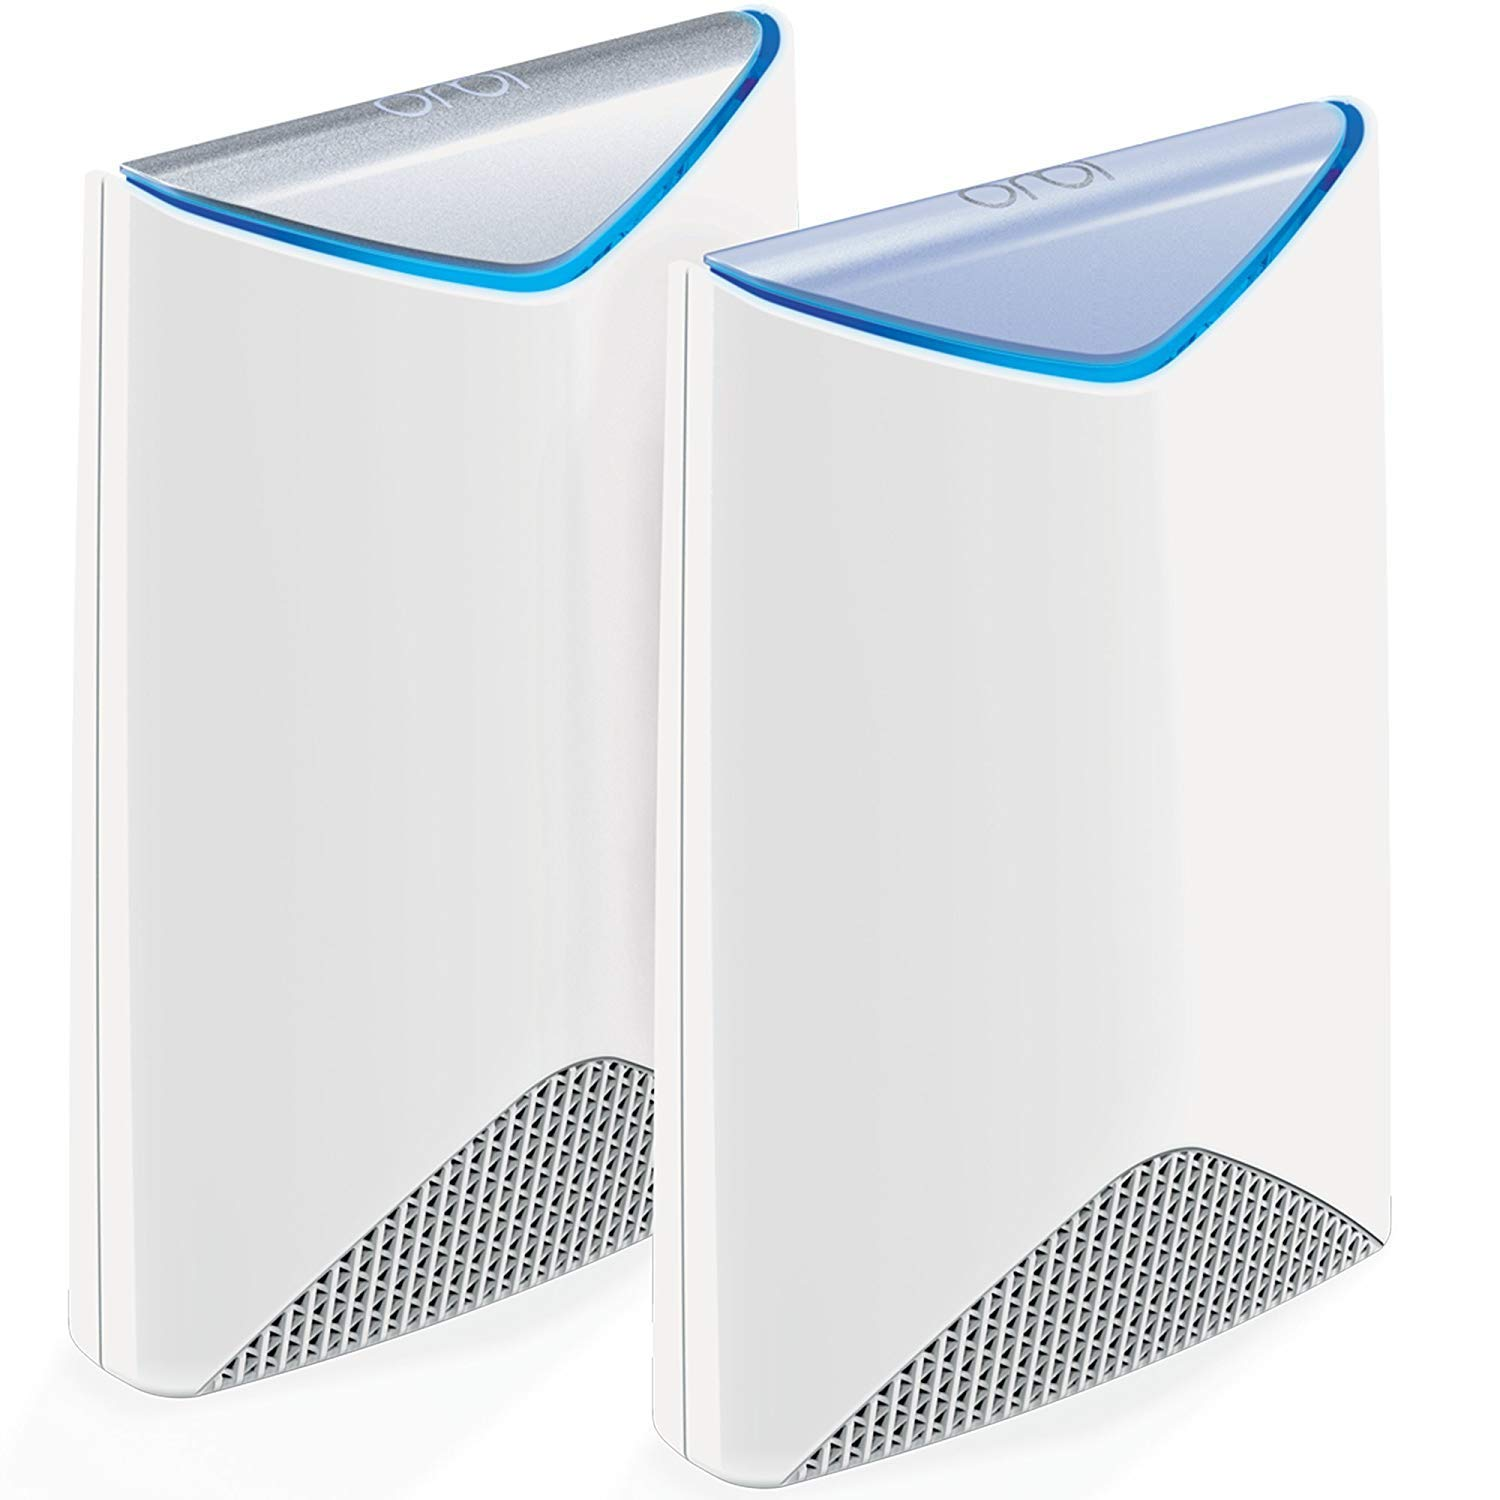 Orbi Pro AC3000 Business WiFi System